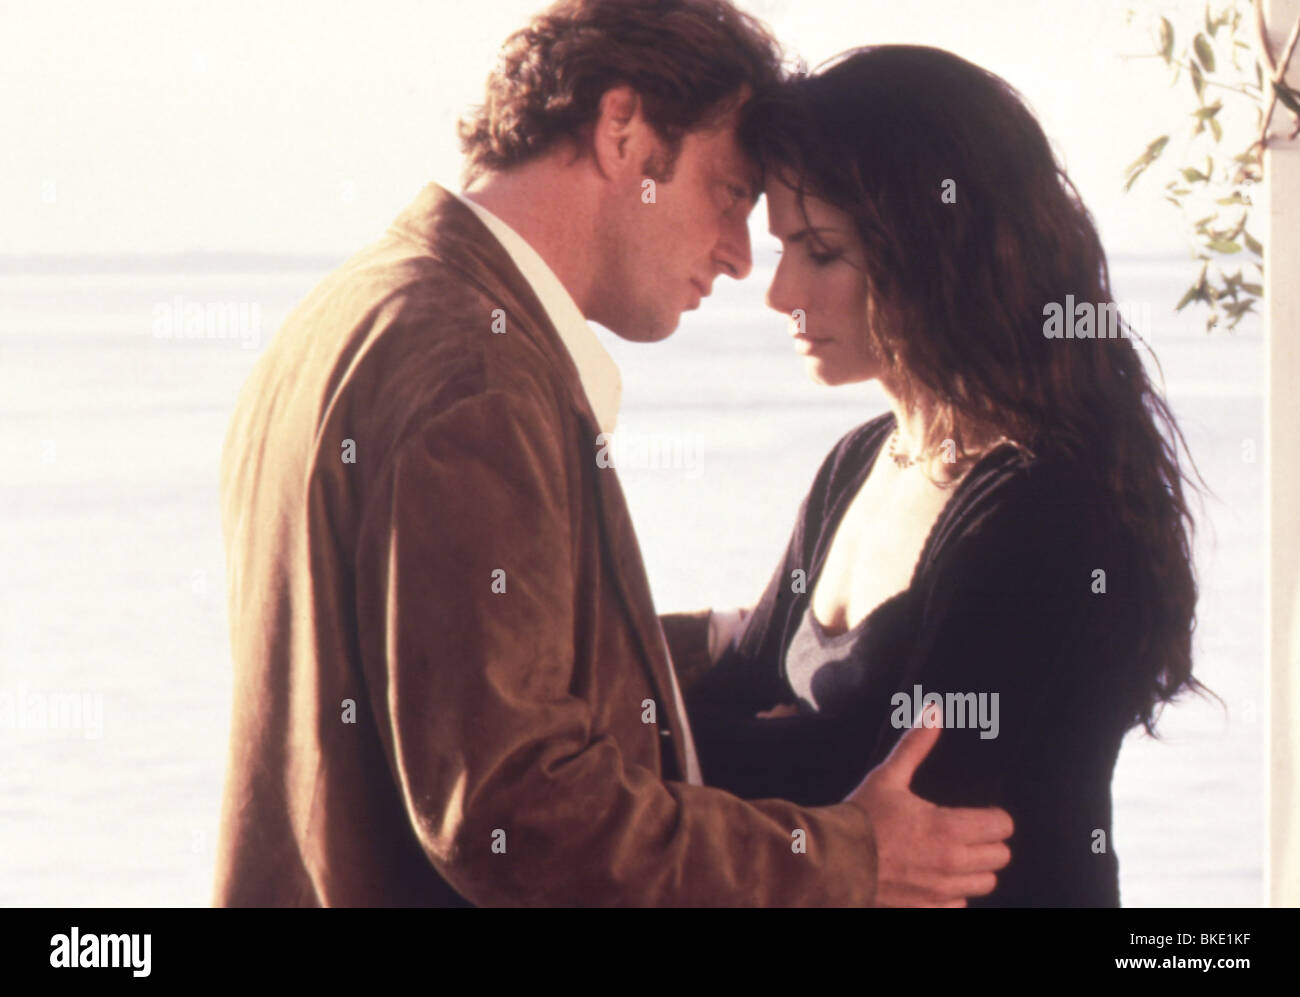 PRACTICAL MAGIC (1999) AIDAN QUINN, SANDRA BULLOCK PRMG 005 - Stock Image